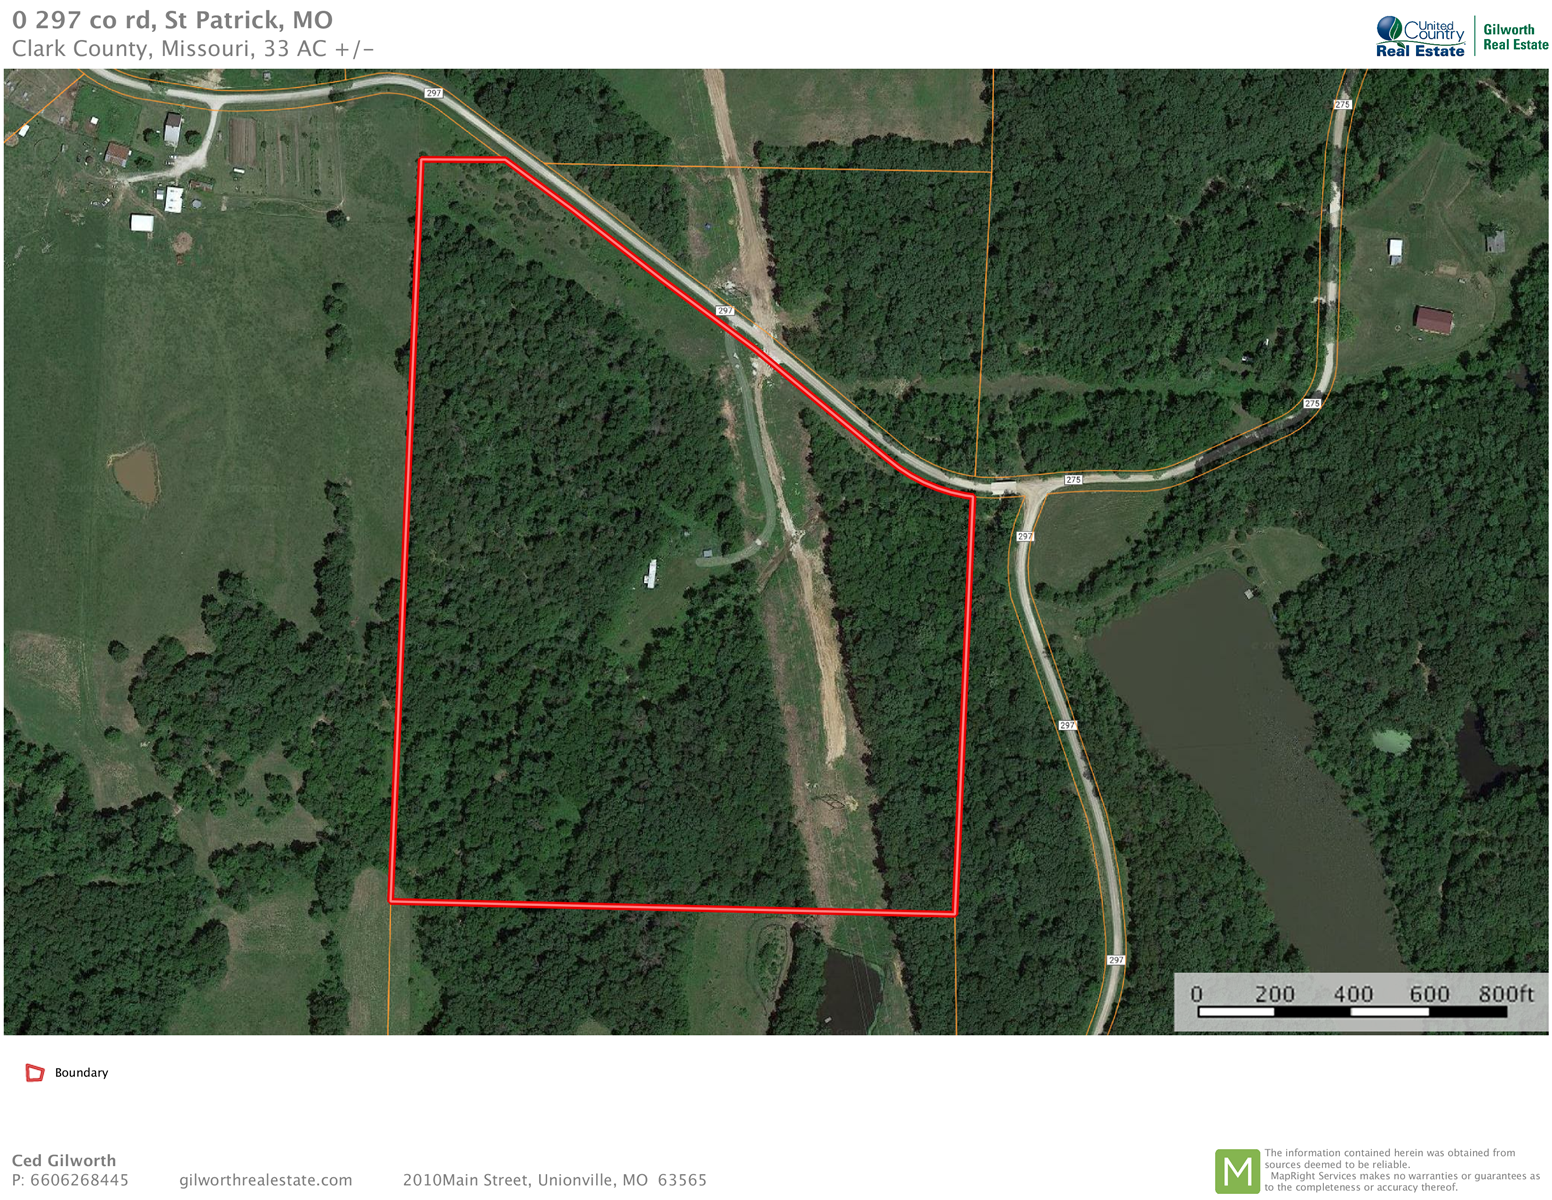 33 Acres m/l of Hunting Ground in Clark Co, MO.